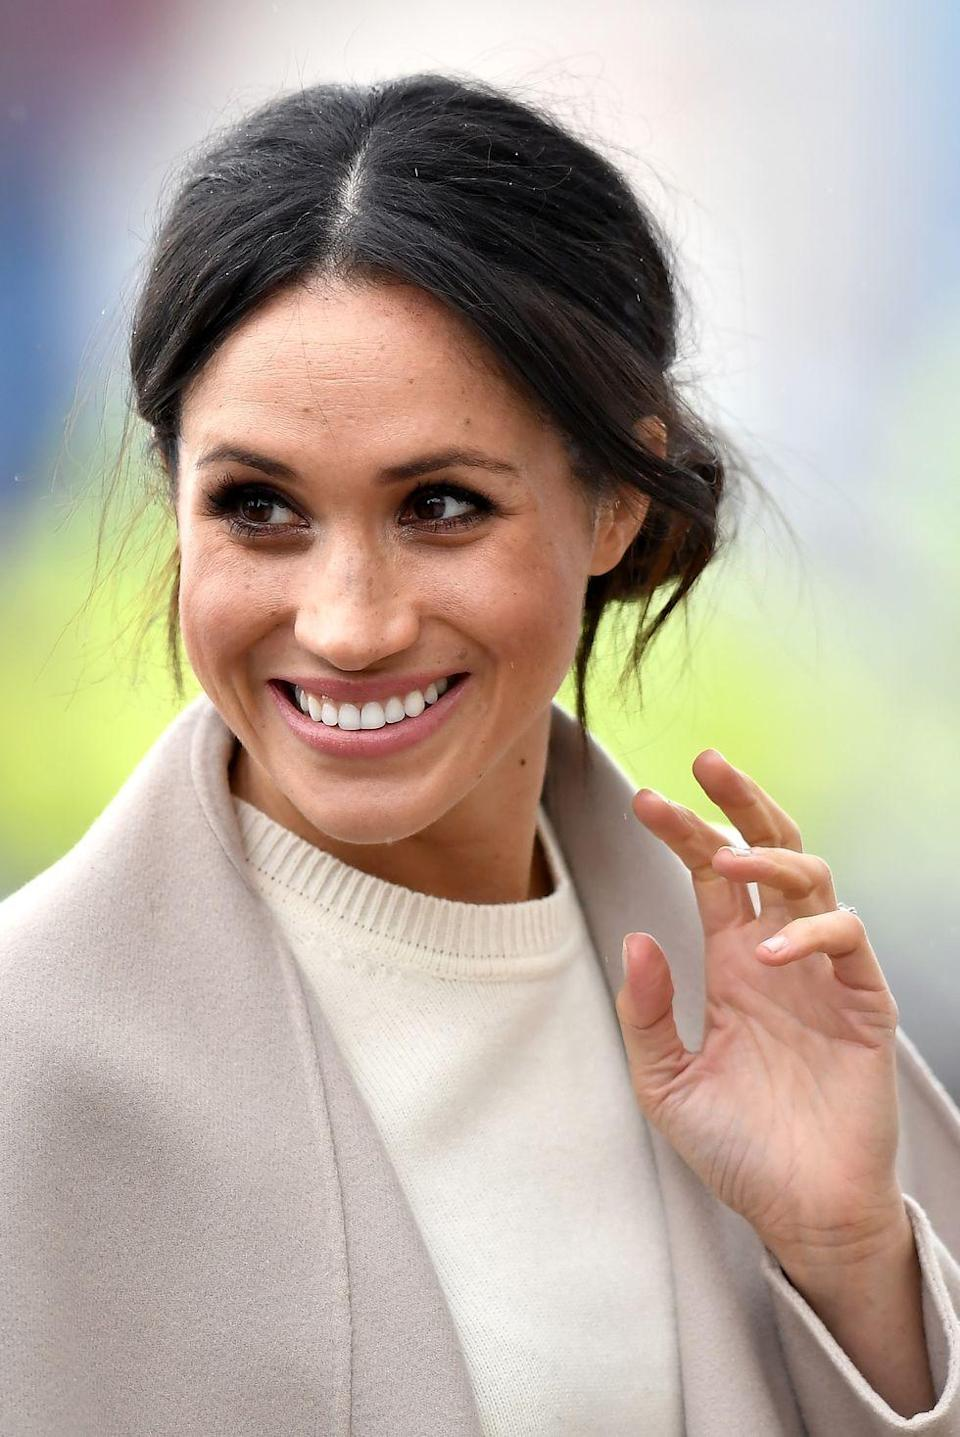 "<p><em>The Crown</em> is only set to run for six seasons, but it's later seasons are expected to delve into the modern members of the royal family—including the Duchess of Sussex, Meghan Markle. </p><p>The former actress apparently has a standing invitation to play herself on the drama, if she wants to come out of retirement for the role. </p><p>""I want to see an episode where Trump comes to Buckingham Palace,"" Left Bank creative director Suzanne Mackie <a href=""https://variety.com/2018/tv/news/the-crown-season-3-donald-trump-megan-markle-1202725163/"" rel=""nofollow noopener"" target=""_blank"" data-ylk=""slk:said"" class=""link rapid-noclick-resp"">said</a> of potential future episodes dealing with modern times. </p><p>As for Meghan Markle, Mackie said, ""She can play herself.""</p>"